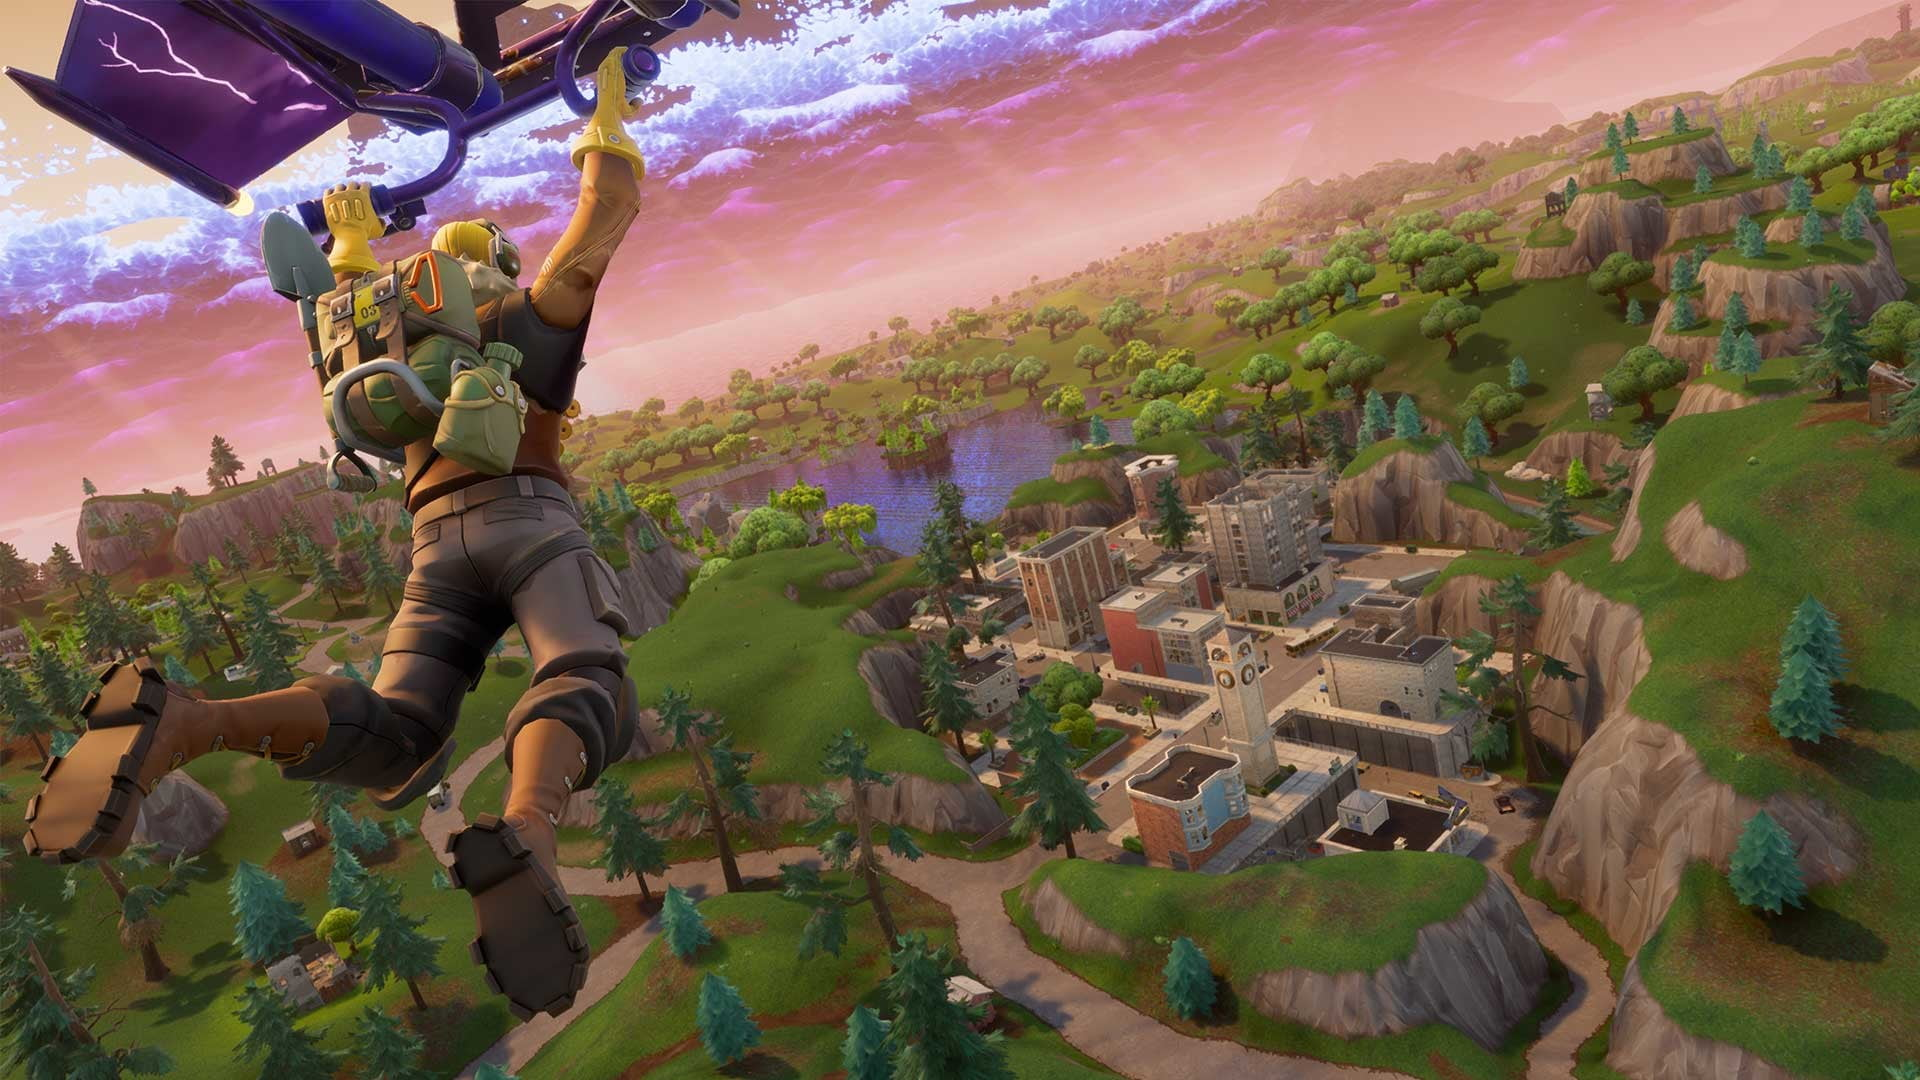 Fortnite Playground Mode To Come Down On July 12 For Tweaks